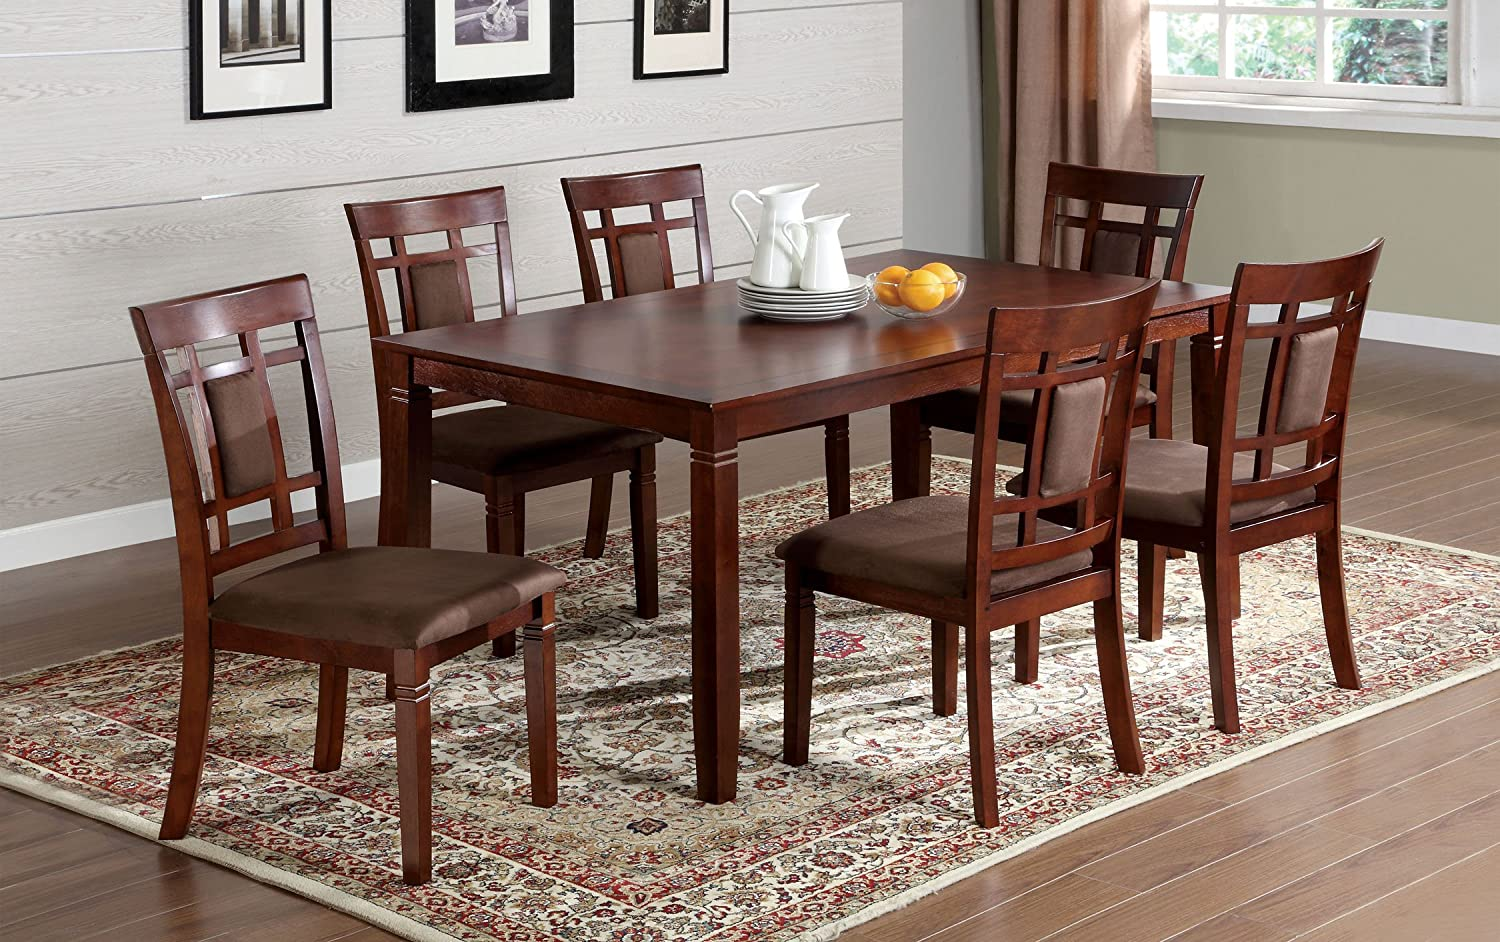 Amazoncom Furniture of America Cartiere 7Piece Dining Table Set